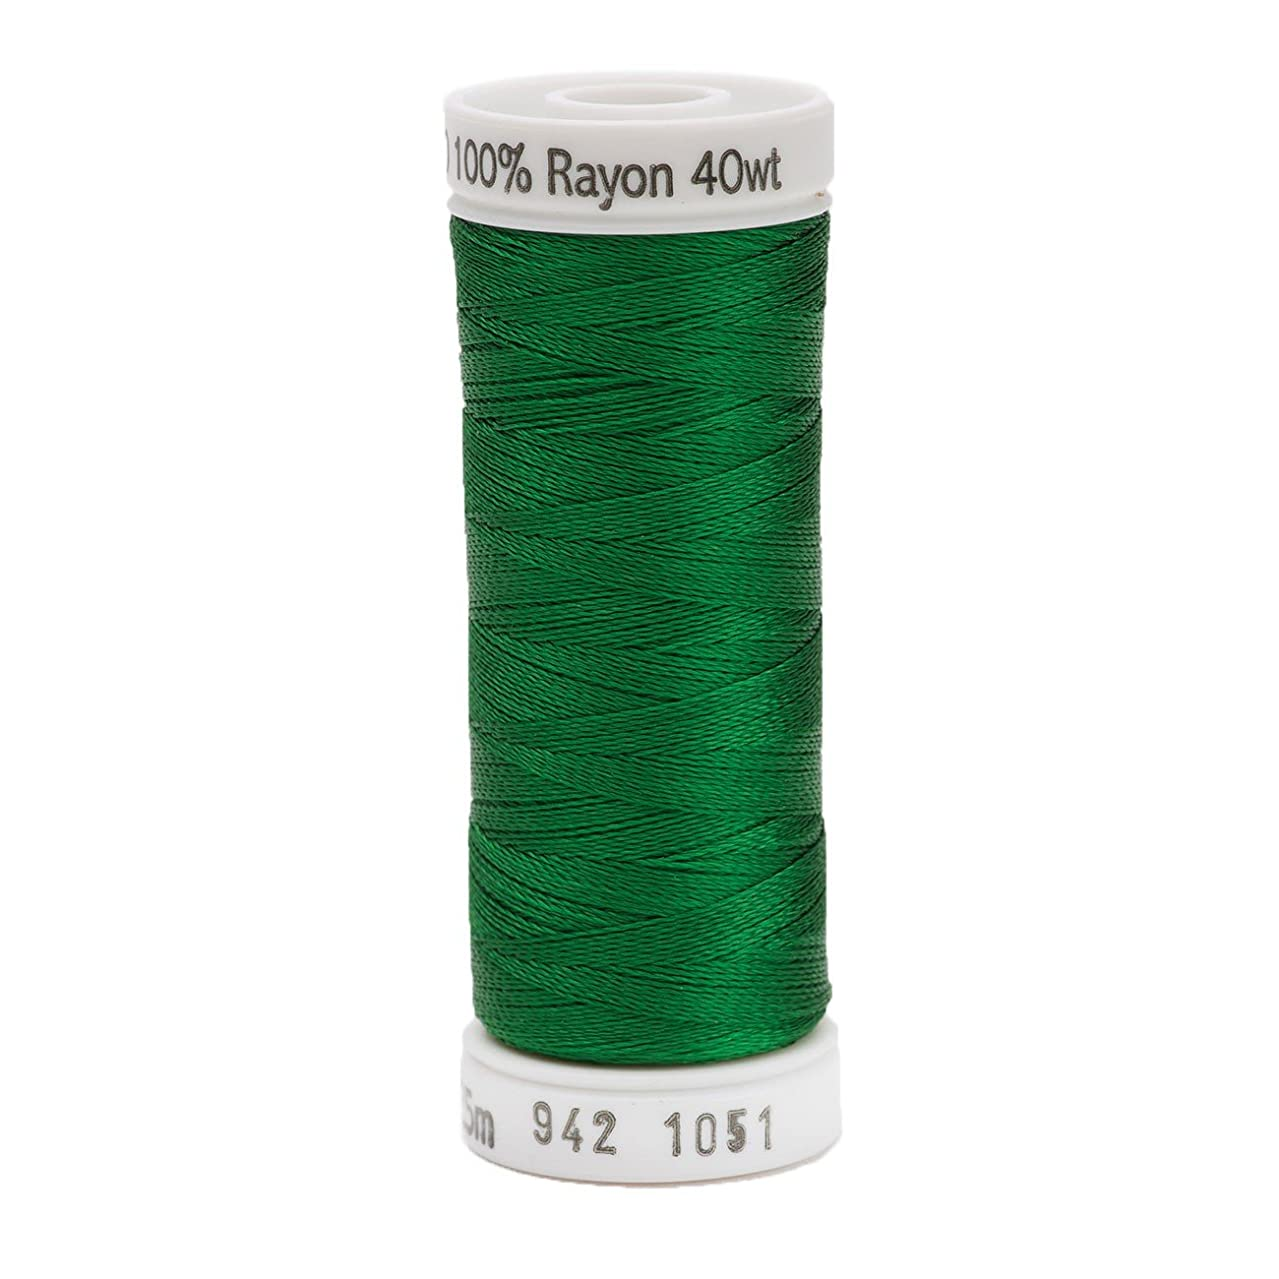 Sulky Rayon Thread for Sewing, 250-Yard, Christmas Green